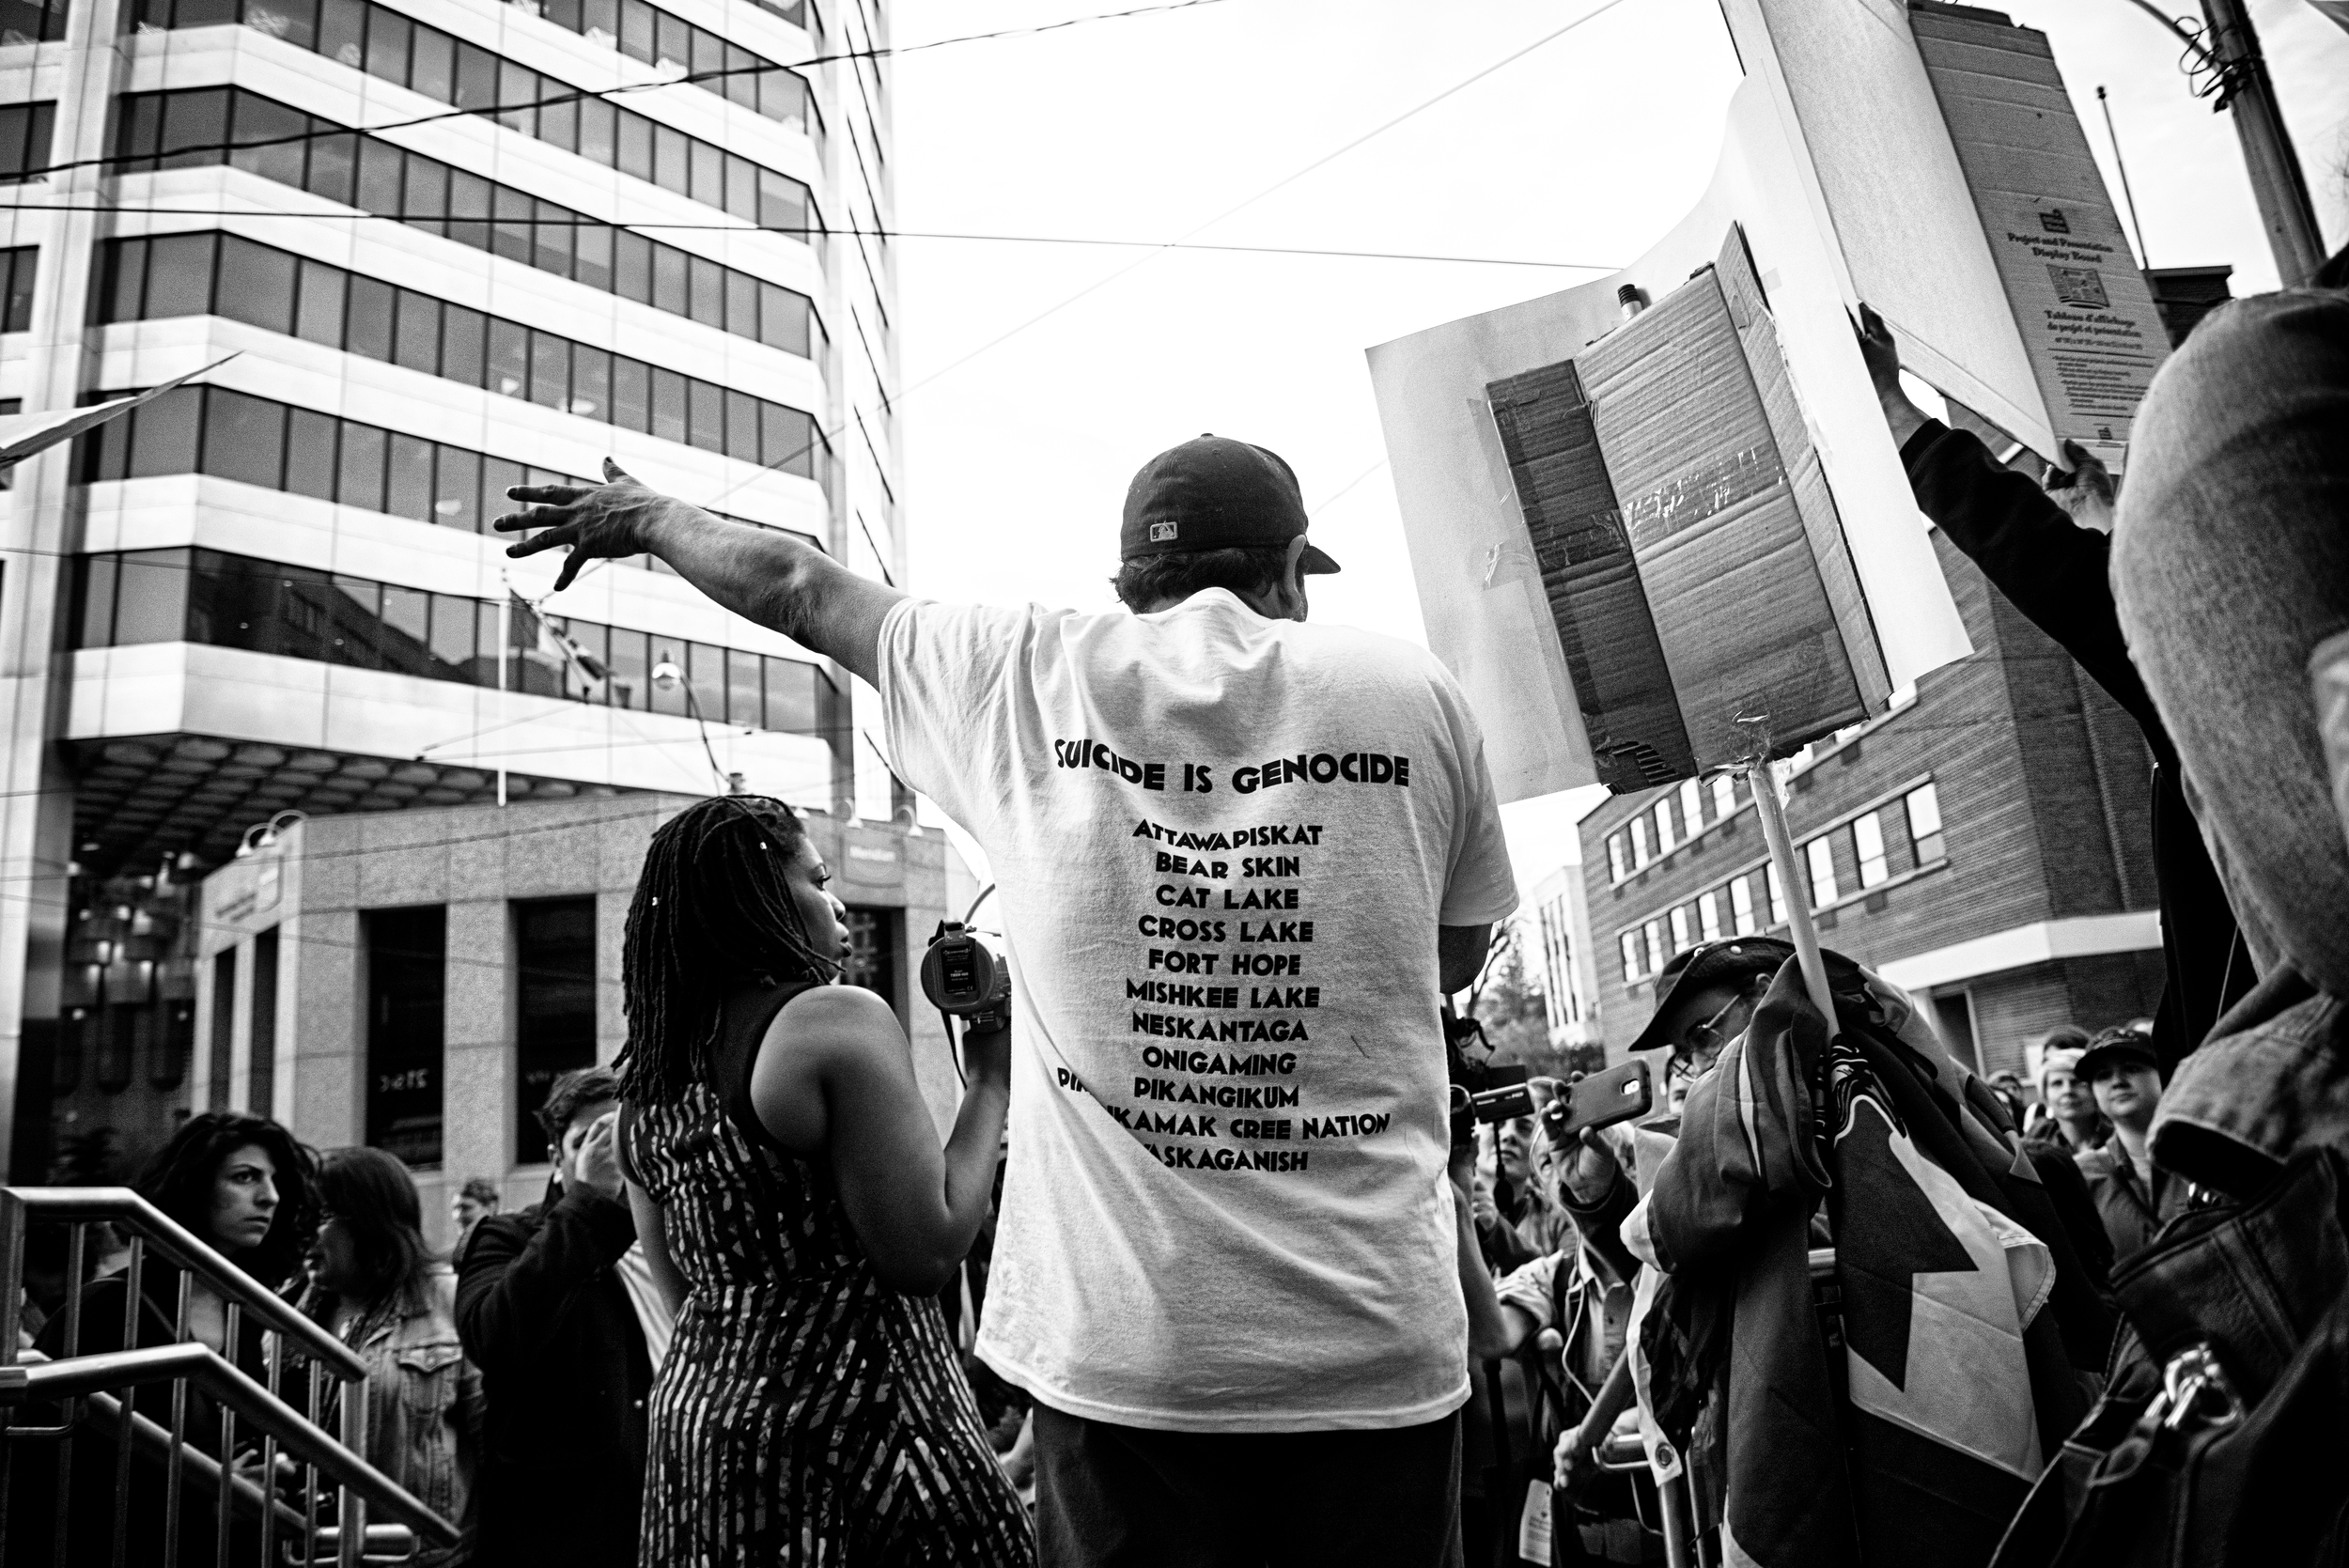 INAC protest photos April18 (3 of 5).jpg